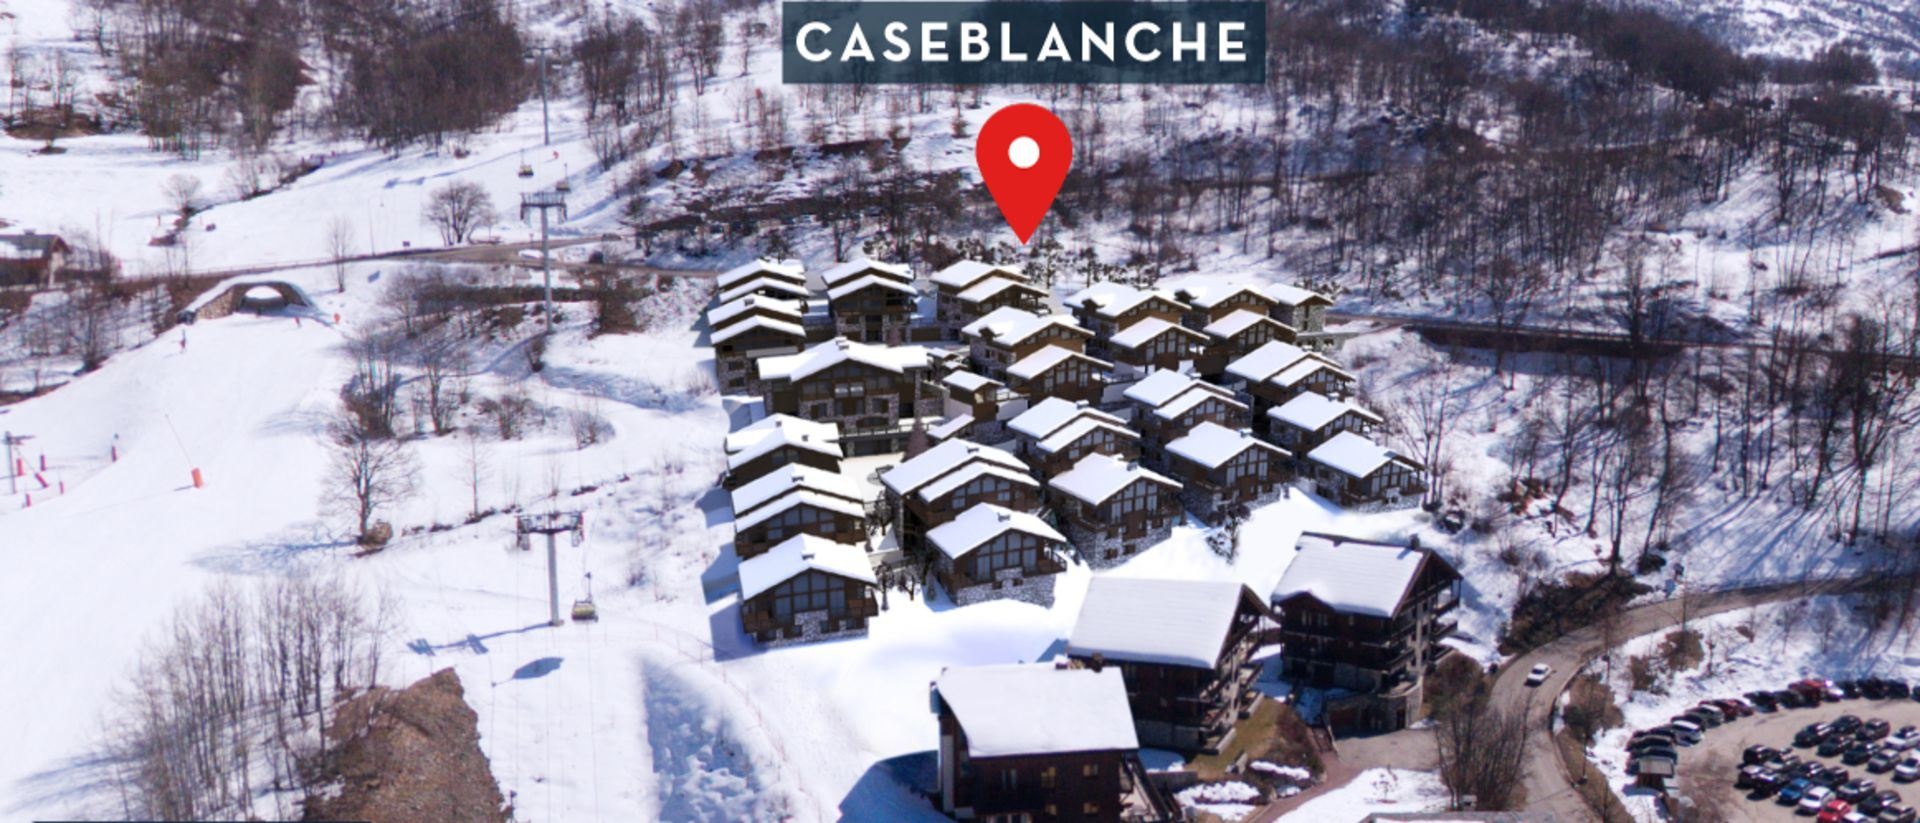 7 Room 12 Pers ski-in ski-out / CASEBLANCHE H8